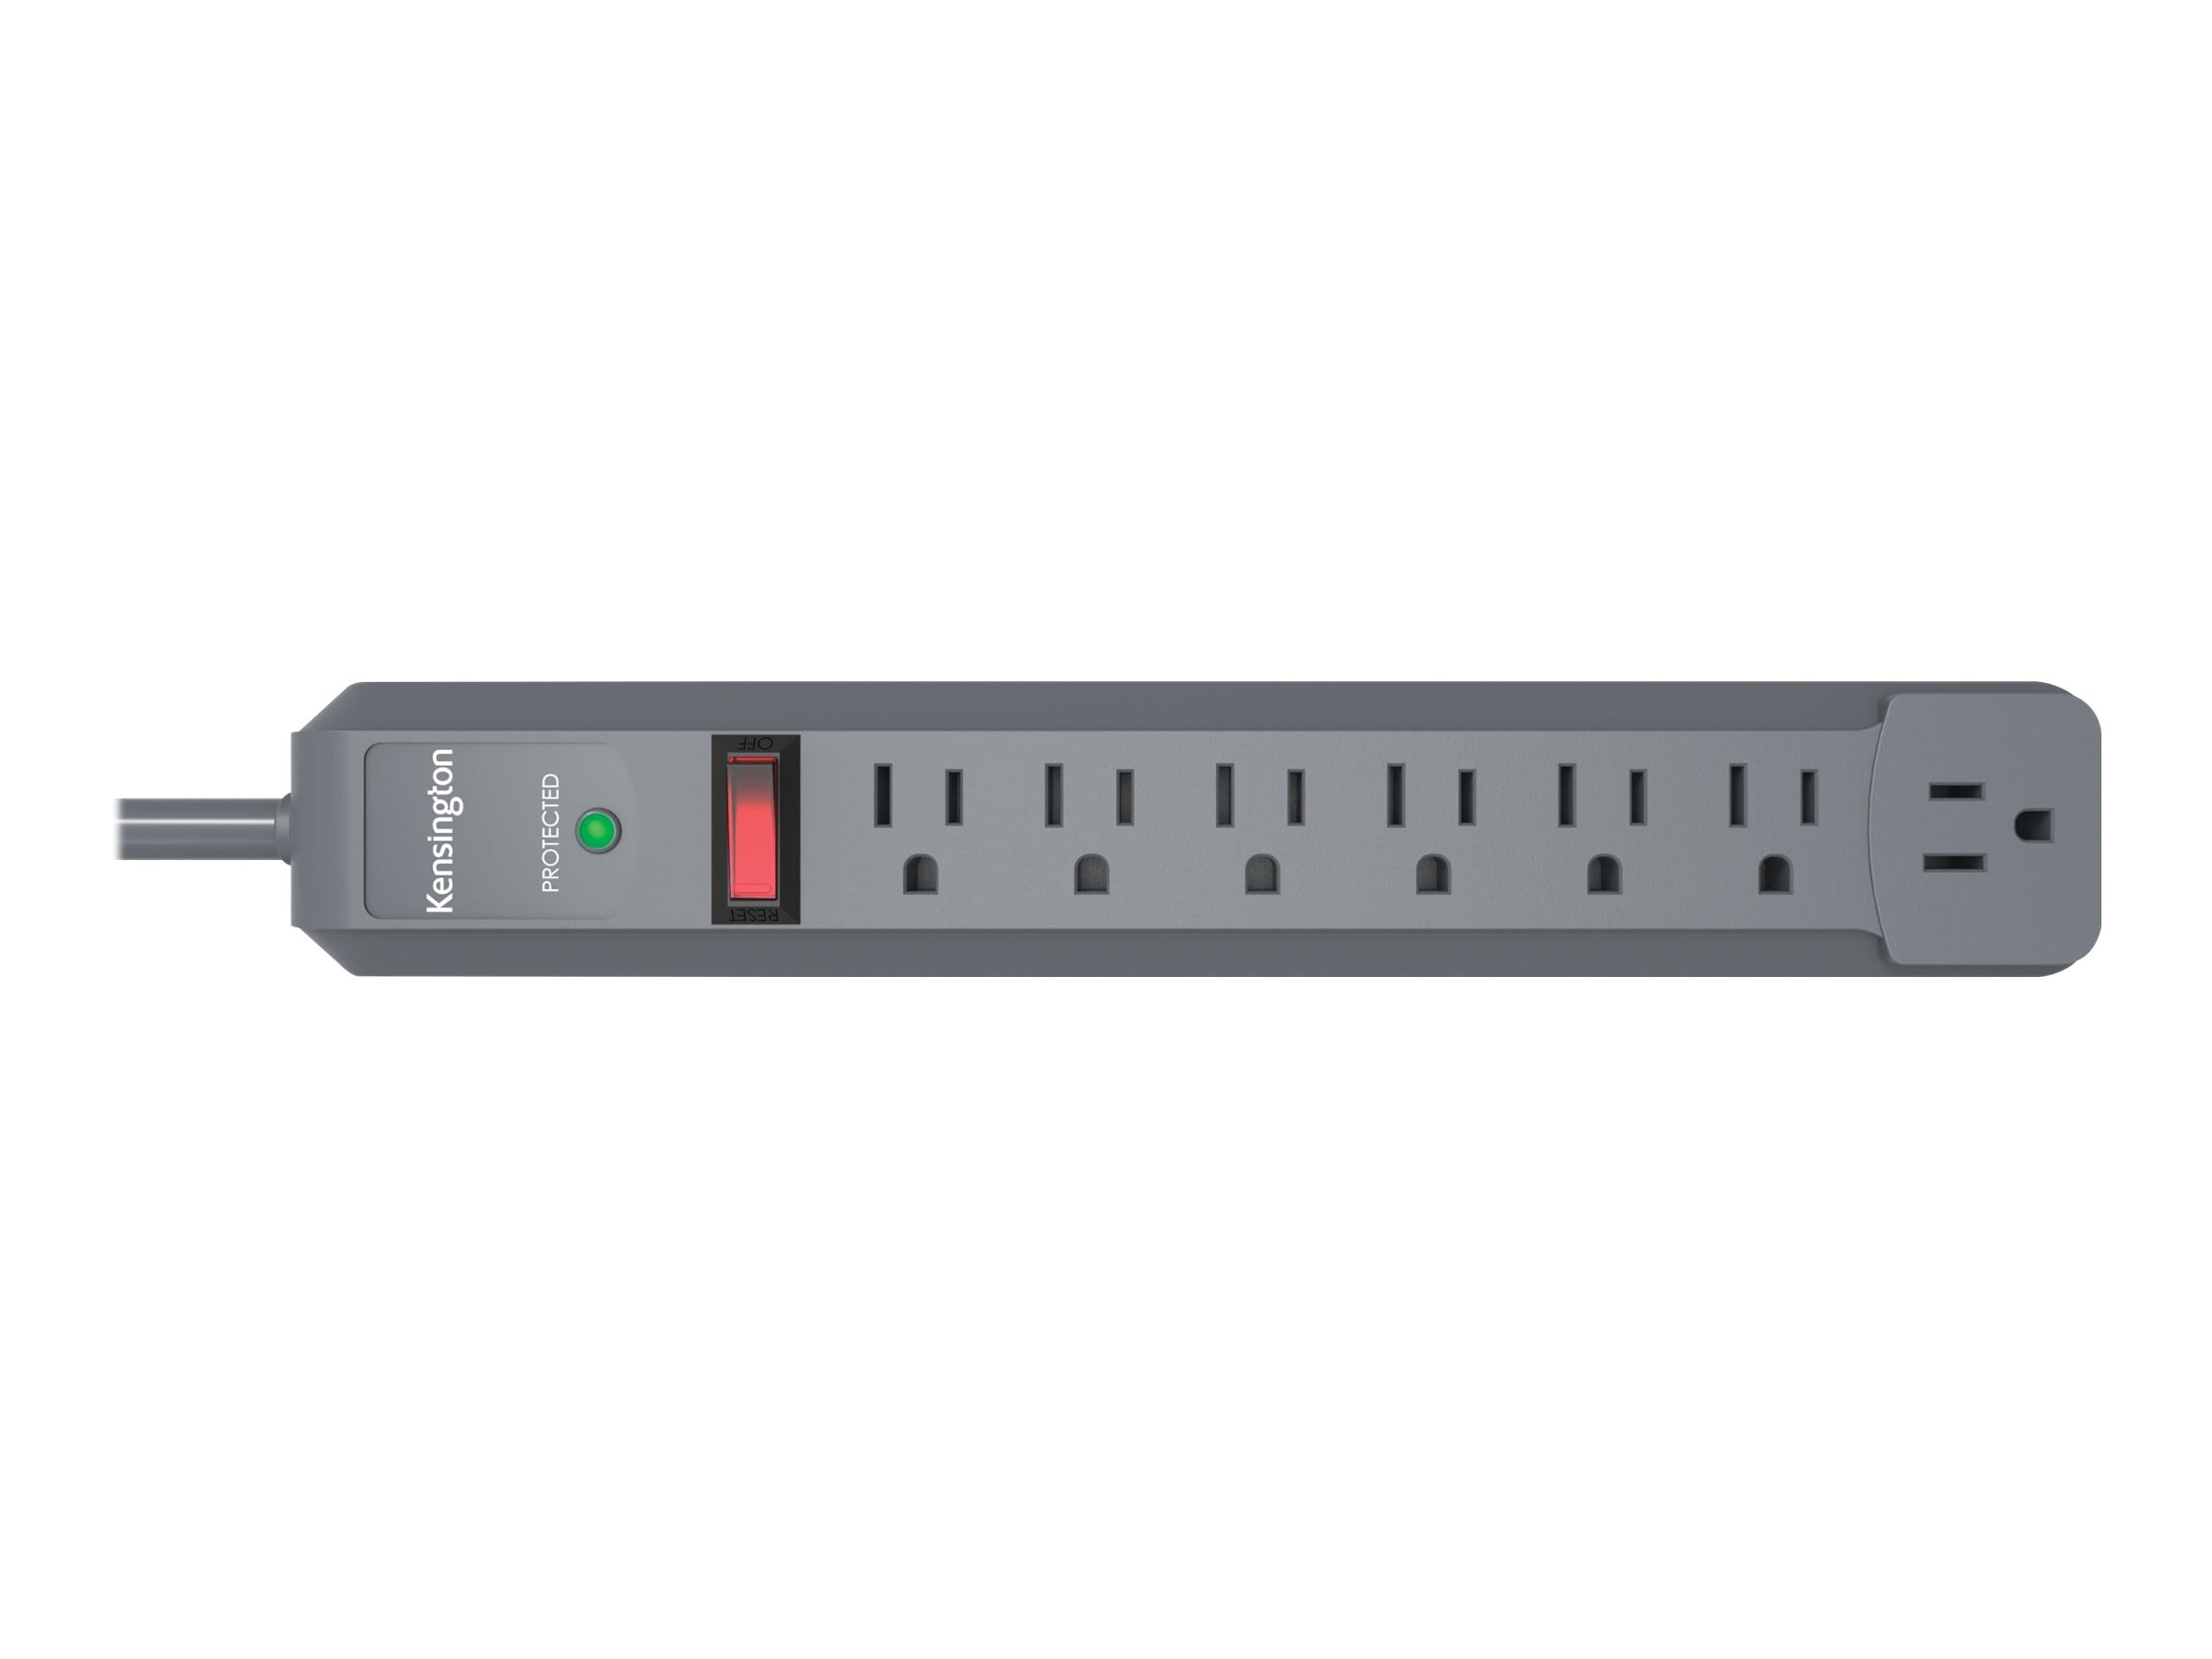 Kensington Guardian Premium Surge Strip, (7) Outlets